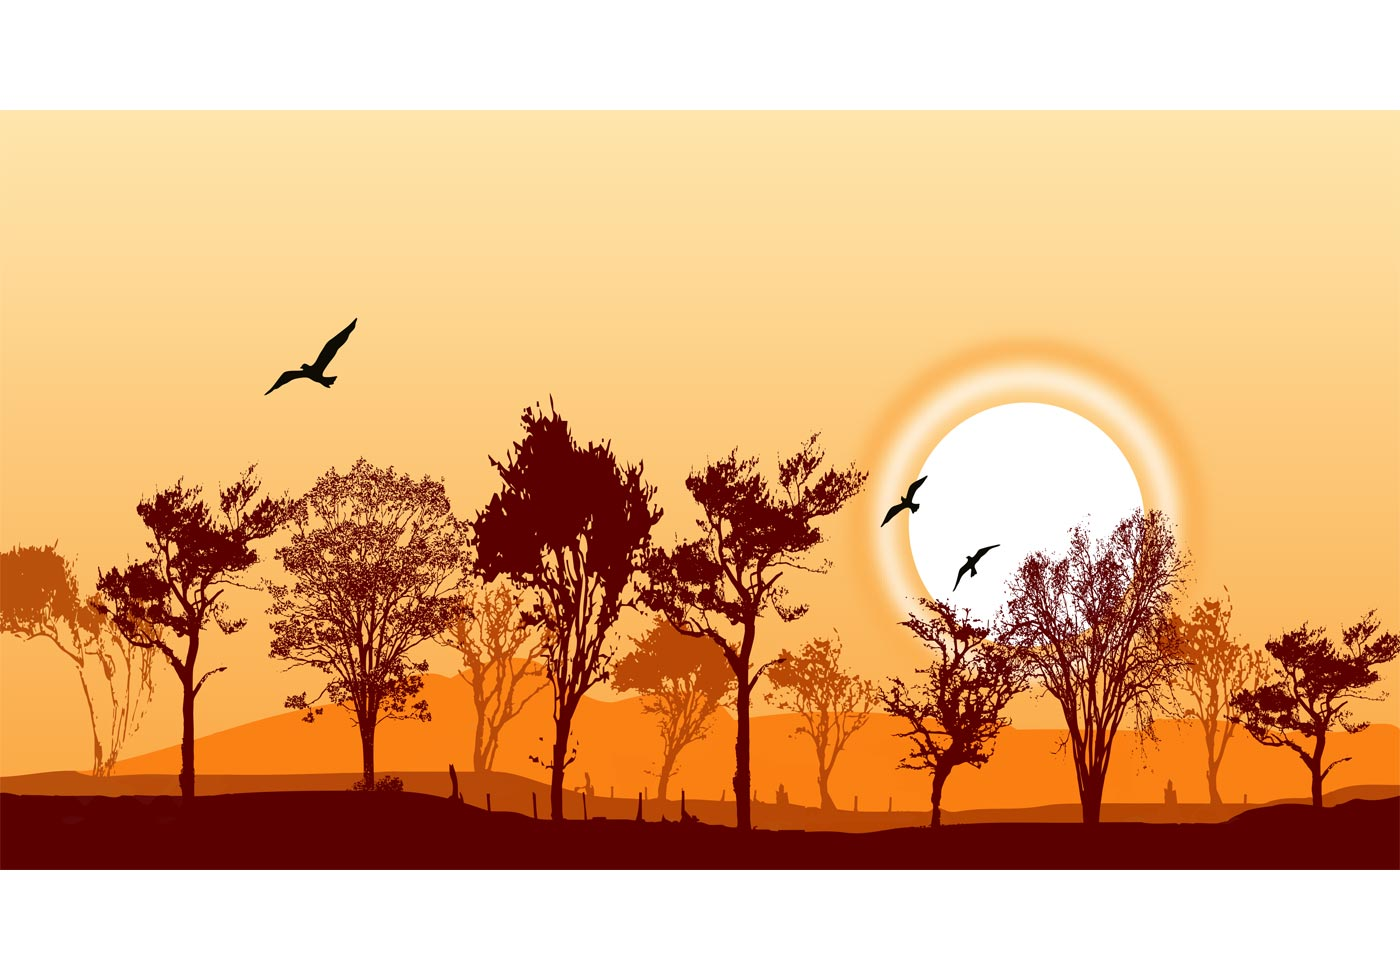 Forest Landscape Vector Free Vector Art At Vecteezy